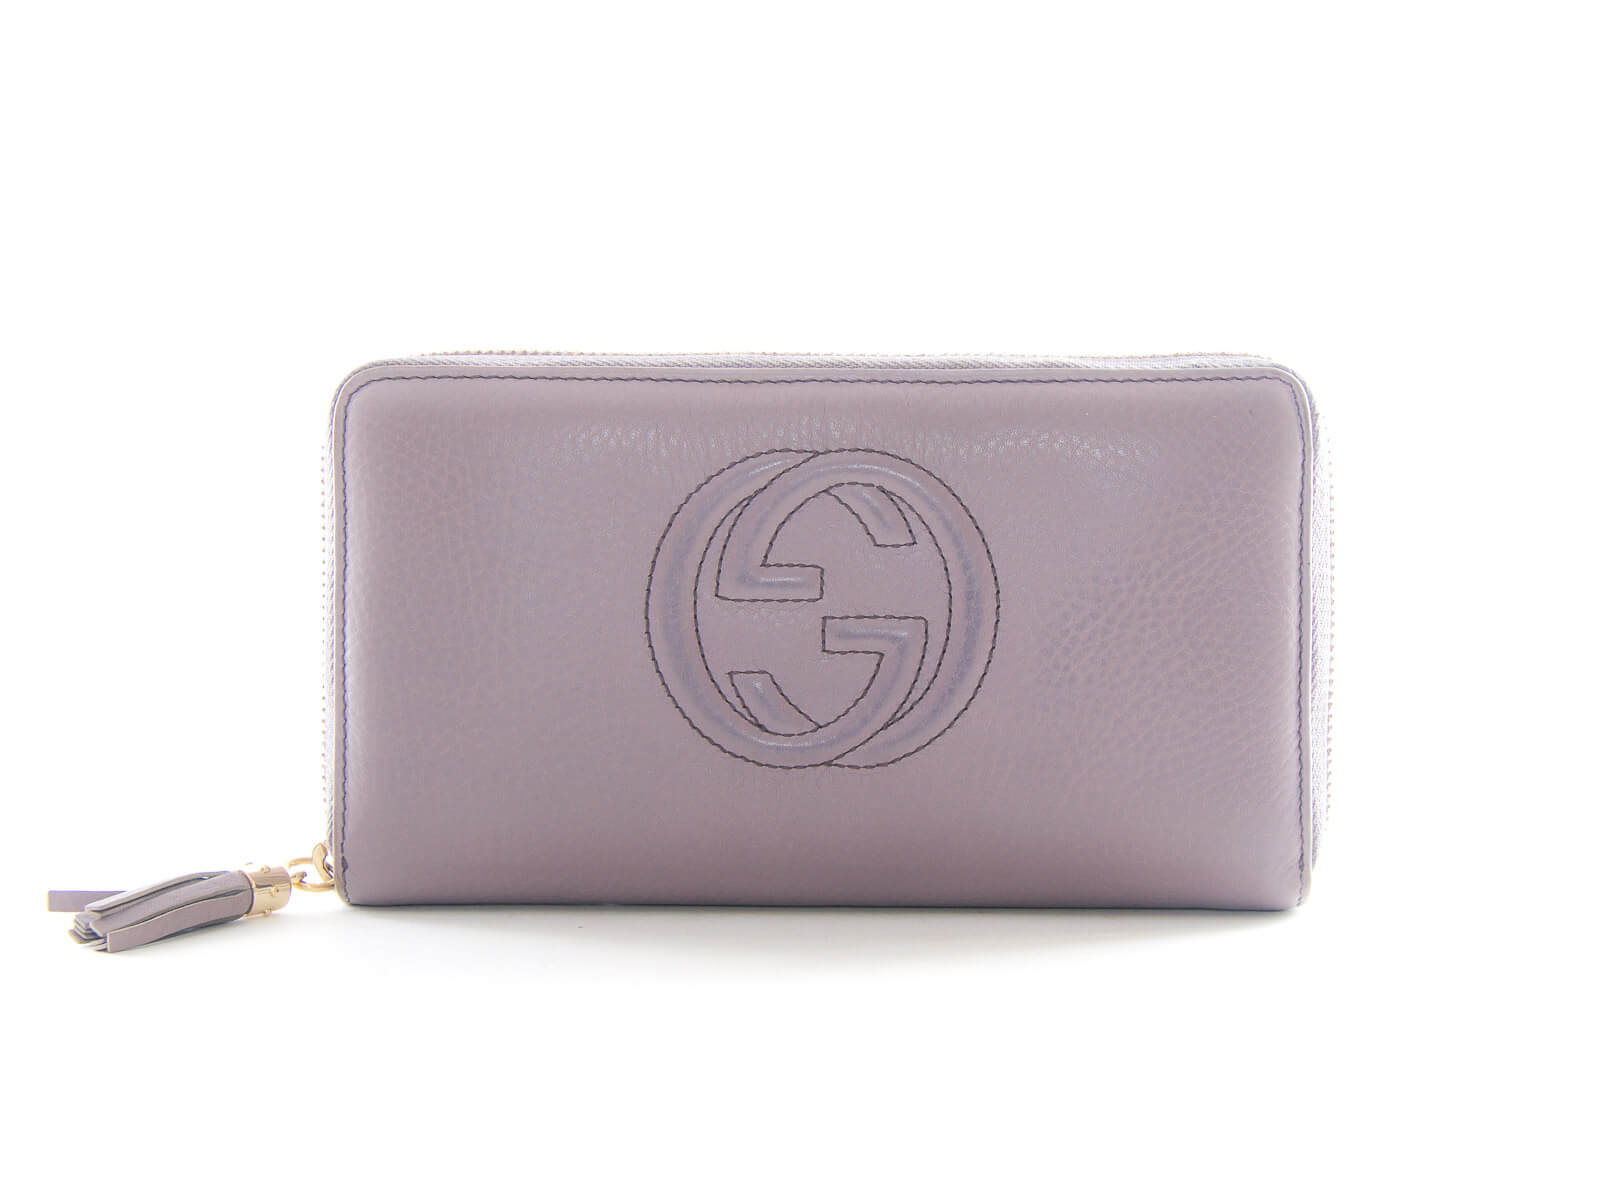 b175abfd885 Authentic Gucci GG logo Soho lavender leather zip around wallet. Tap to  expand